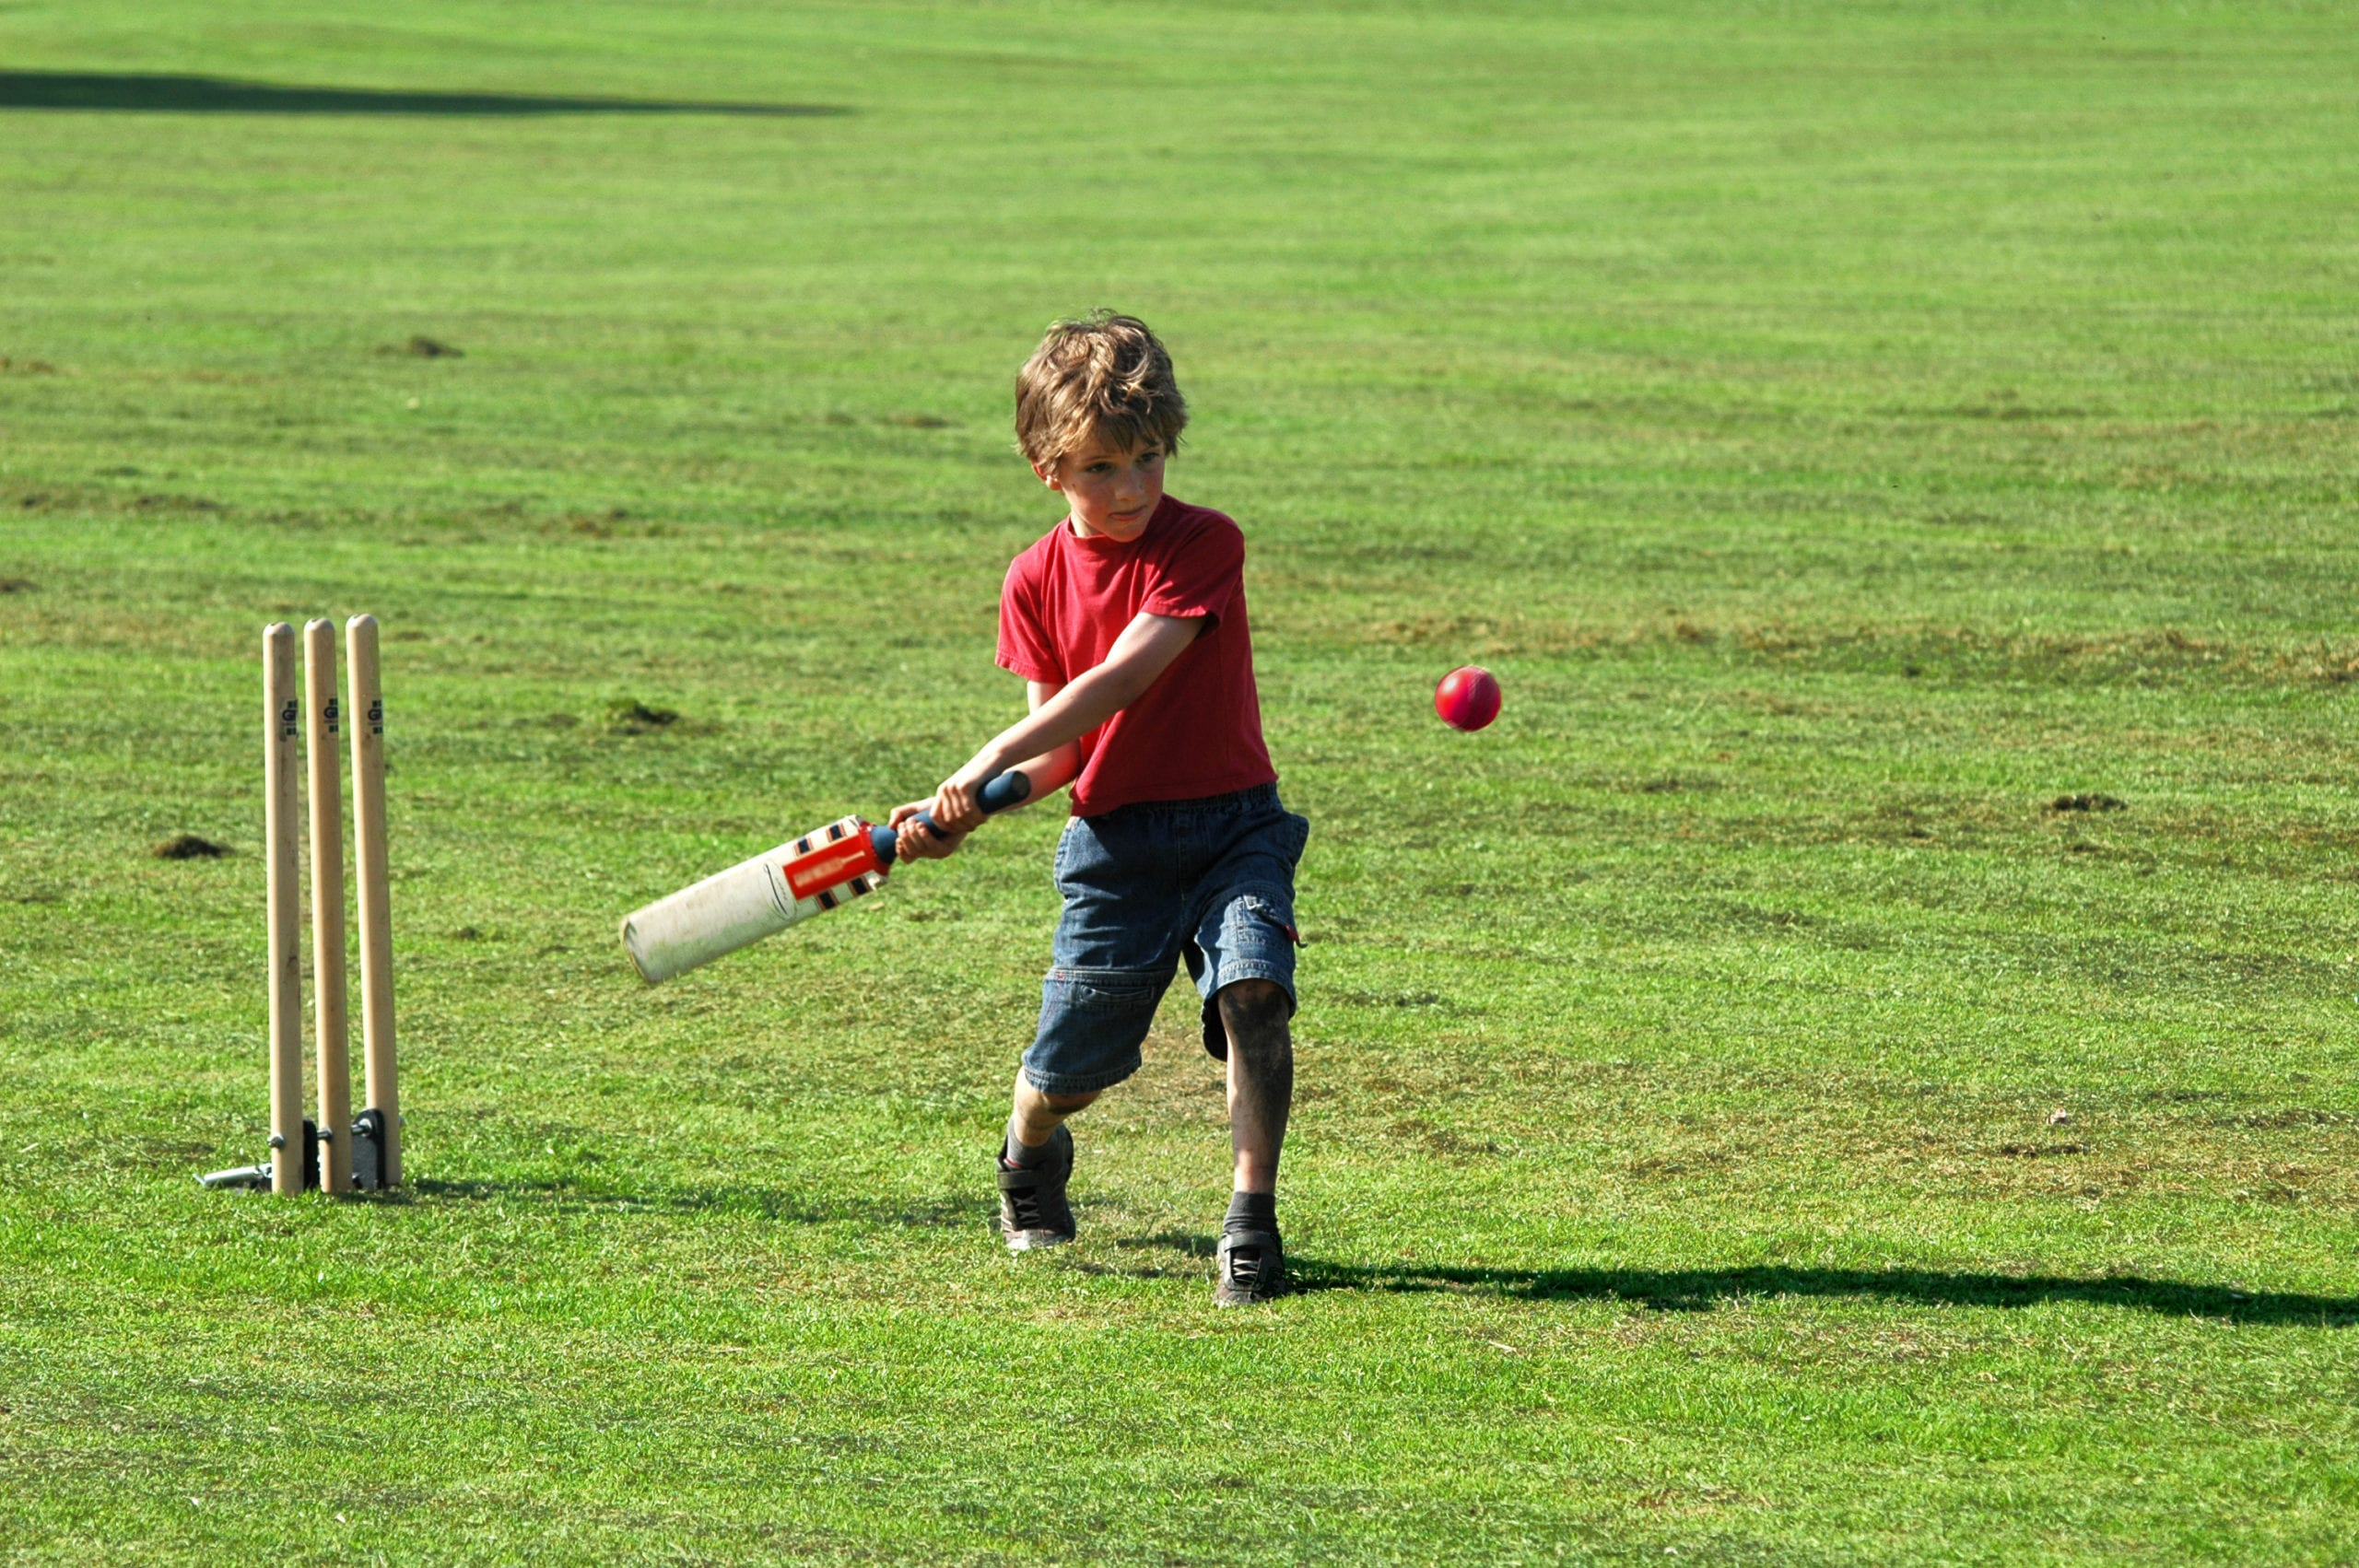 boy playing cricket, batting ball